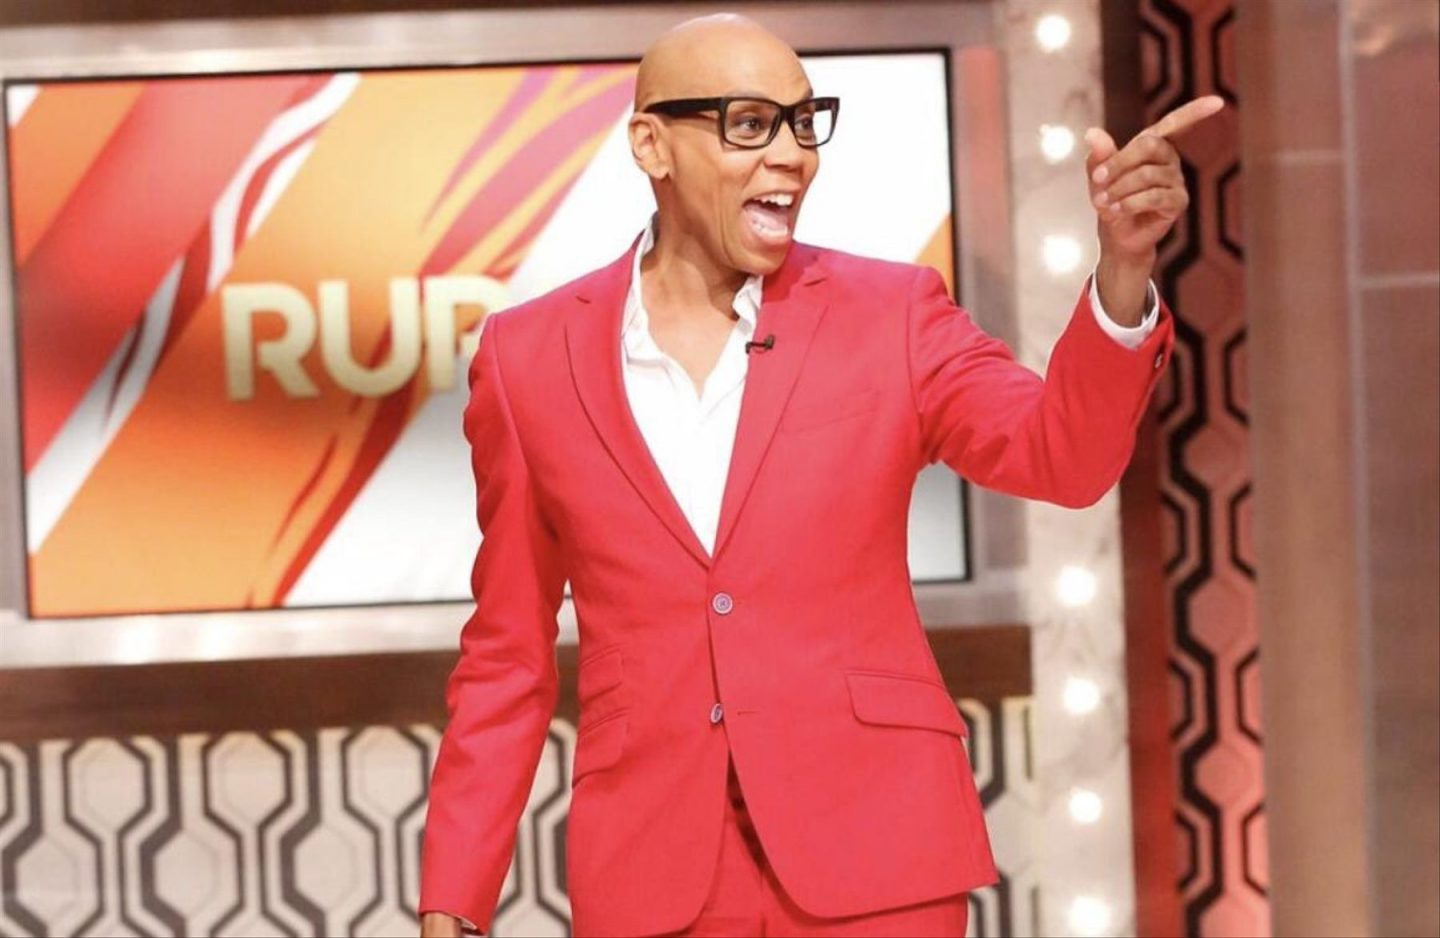 RuPaul's daytime talk show gets a release date!